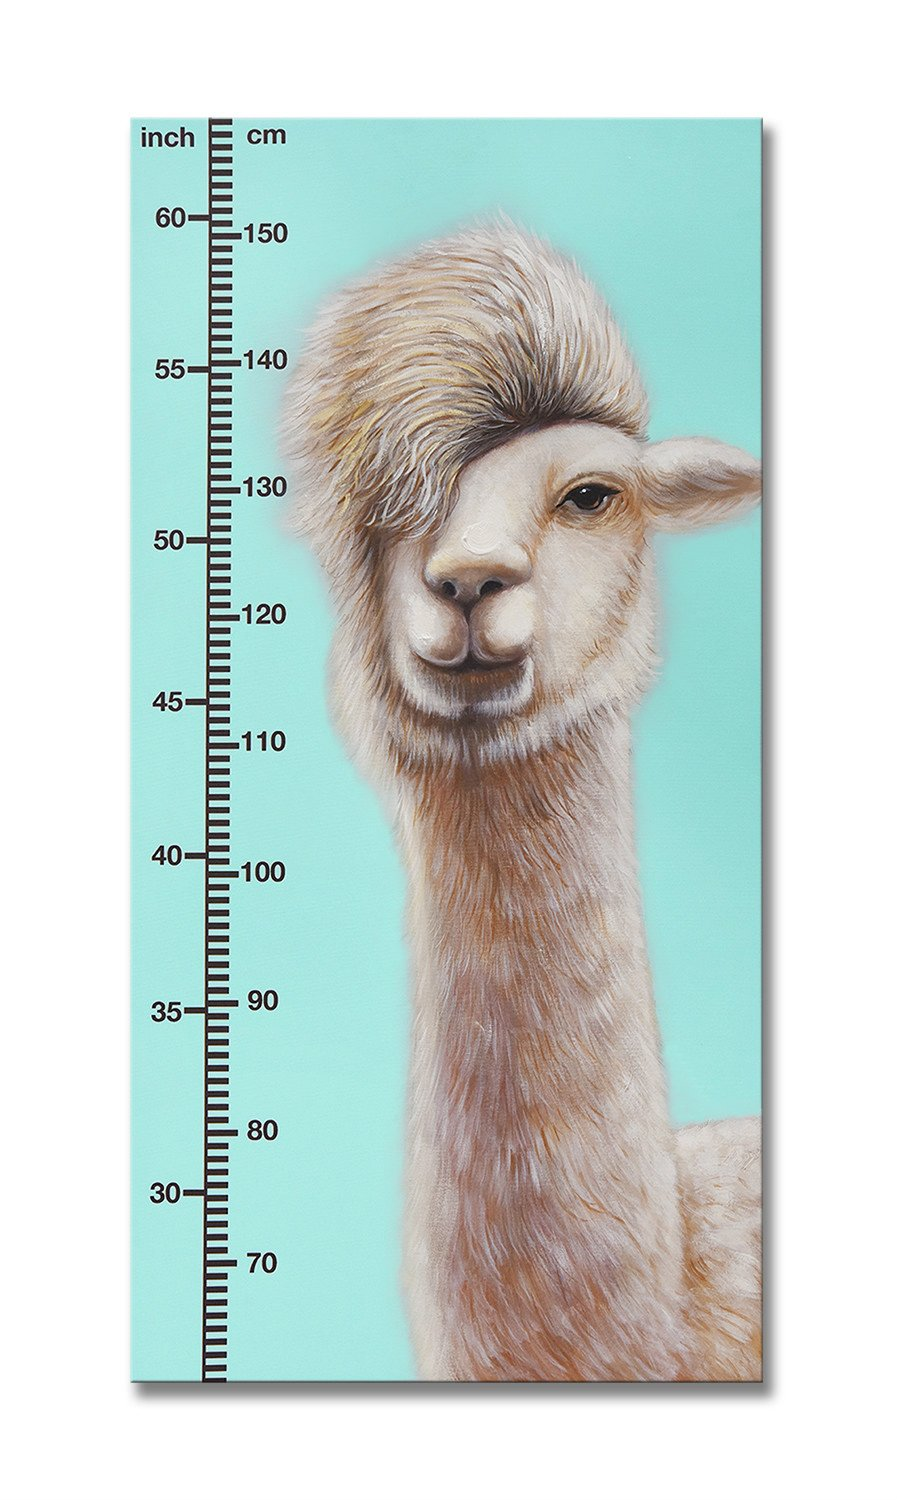 SEVEN WALL ARTS - Baby Height Growth Chart Artwork Canvas Art Wall Hanging Ruler Height Measurement Chart with Wood Frame for Kids Room Nursery Room Wall Decor 20 x 40 Inch (Blue)